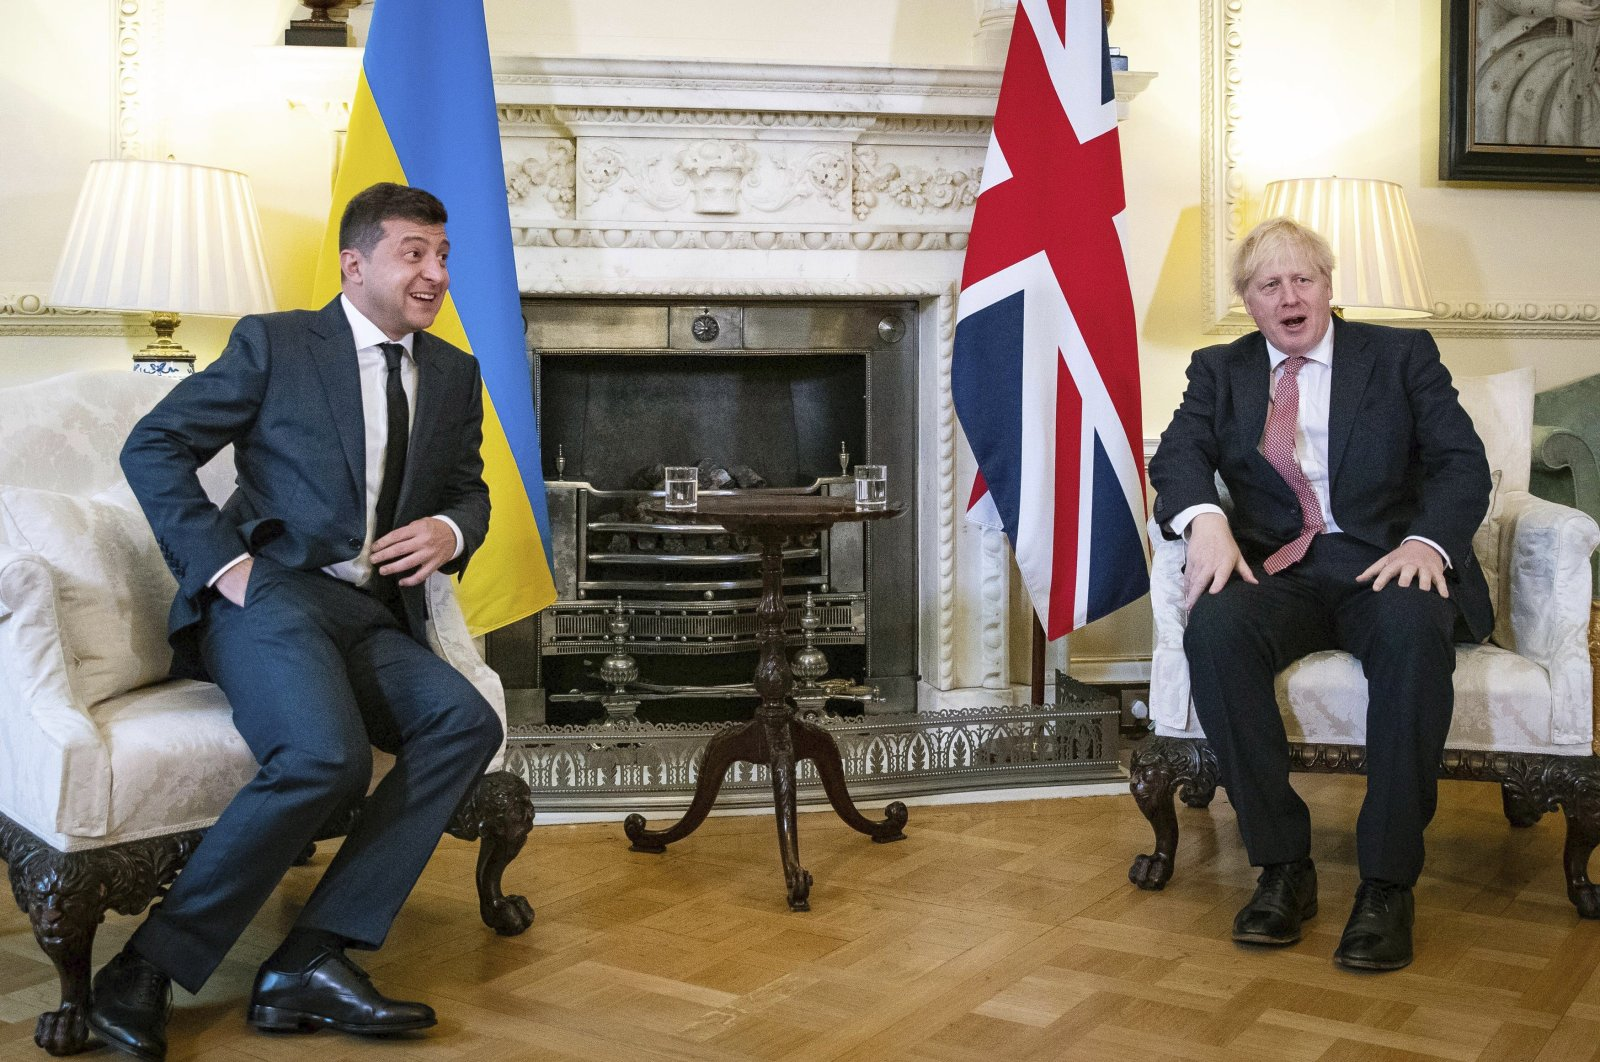 Britian's Prime Minister Boris Johnson (R) sits during a meeting with Ukraine President Volodymyr Zelenskyy in Downing Street, London, Oct. 8, 2020. (AP Photo)